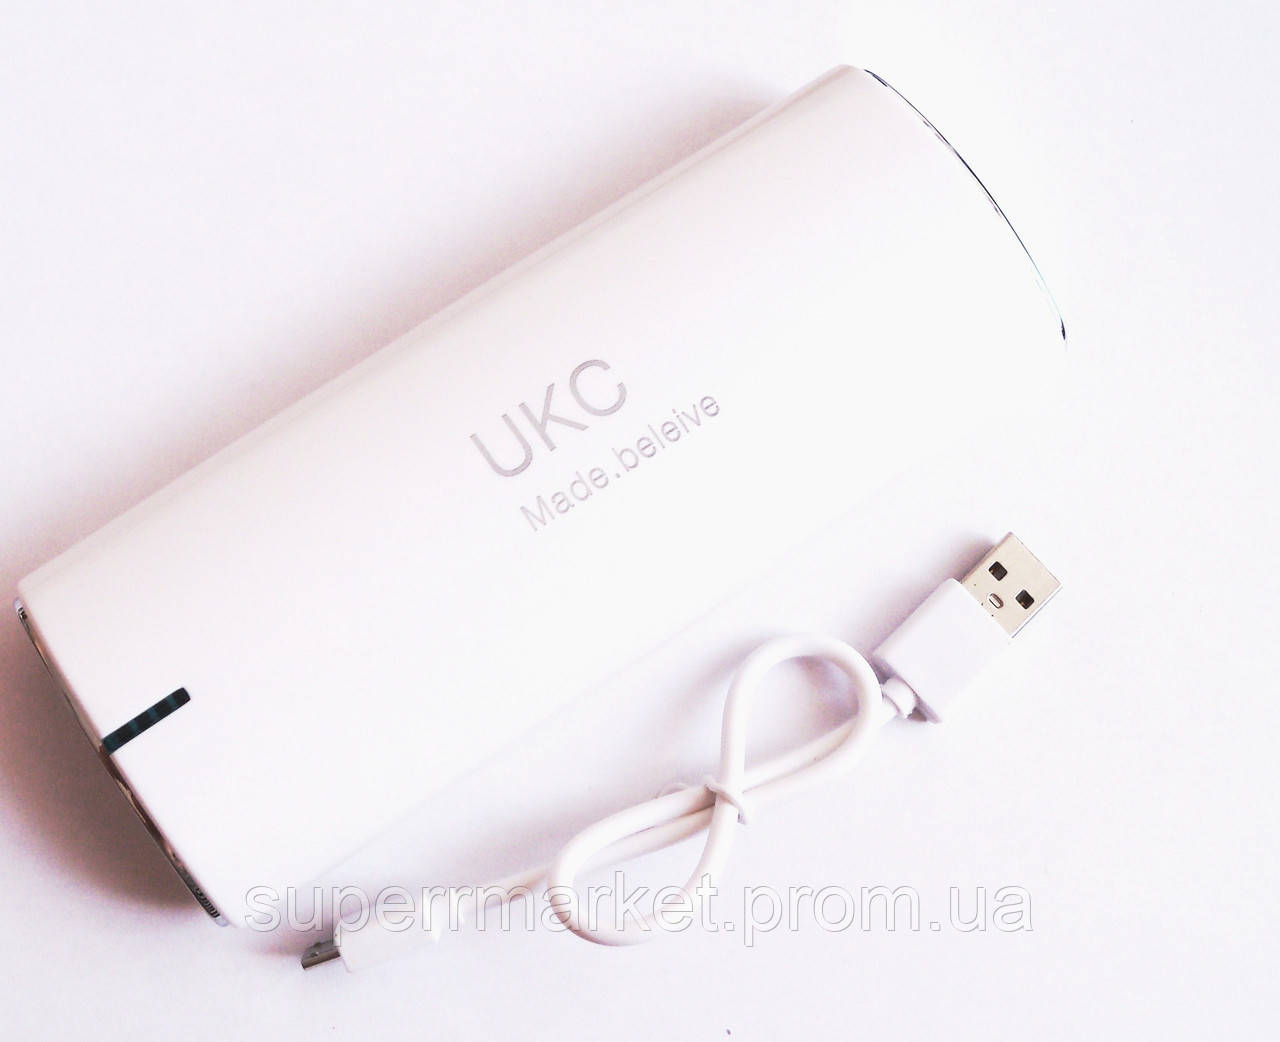 Универсальная батарея  -UKC power bank 20000 mAh